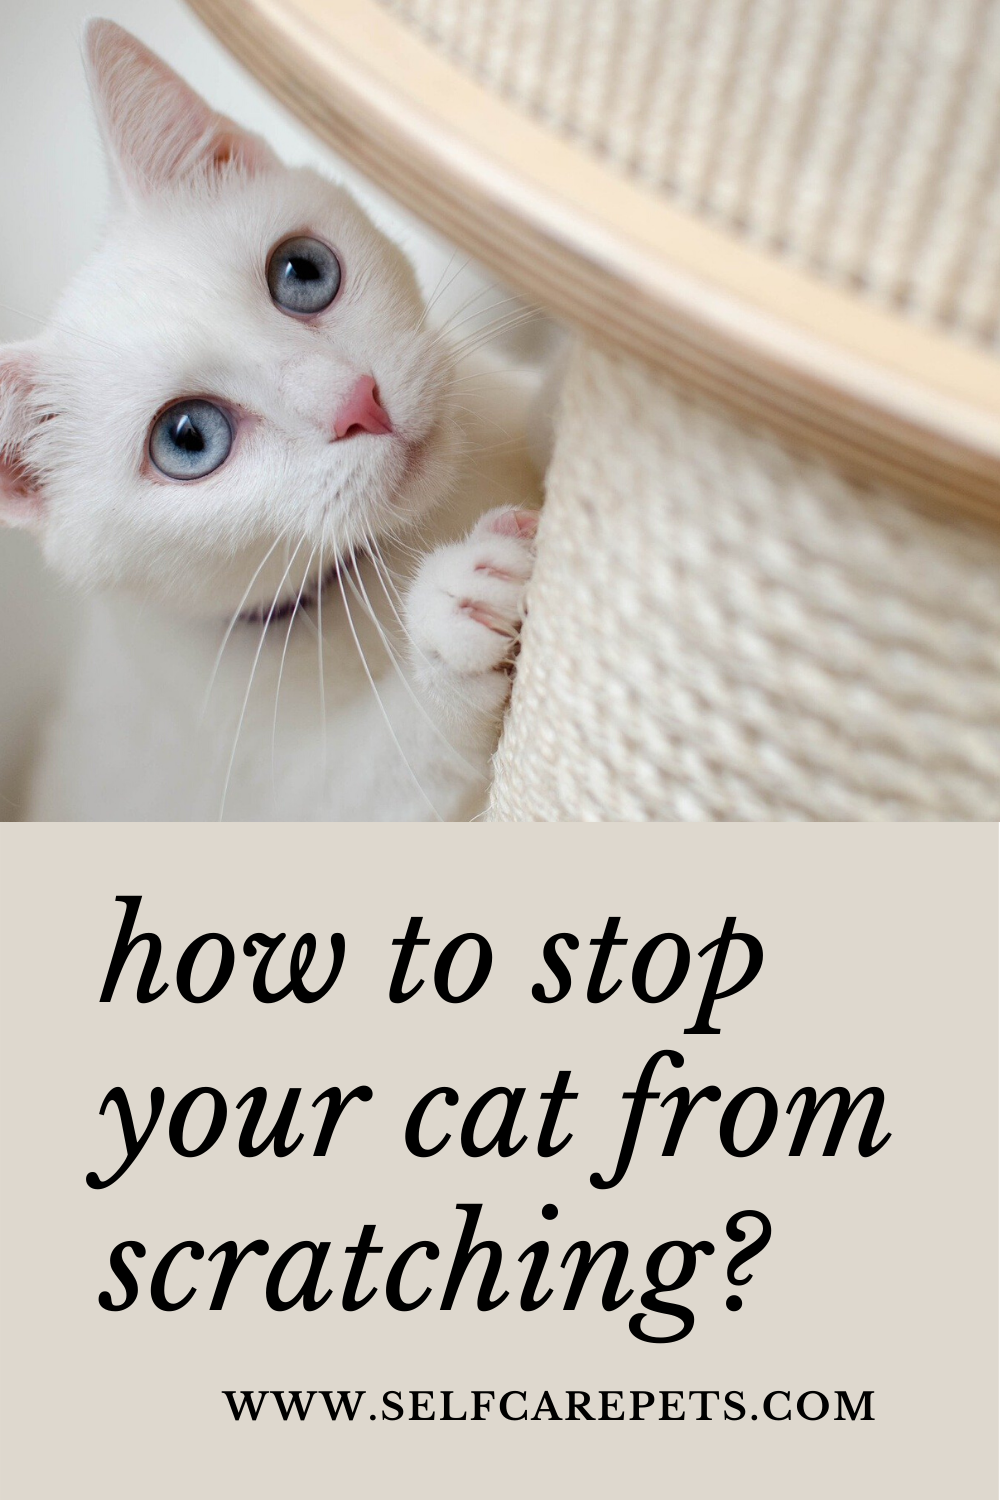 How To Stop Your Cat From Scratching In 2020 Cats Dog Training Cat Training